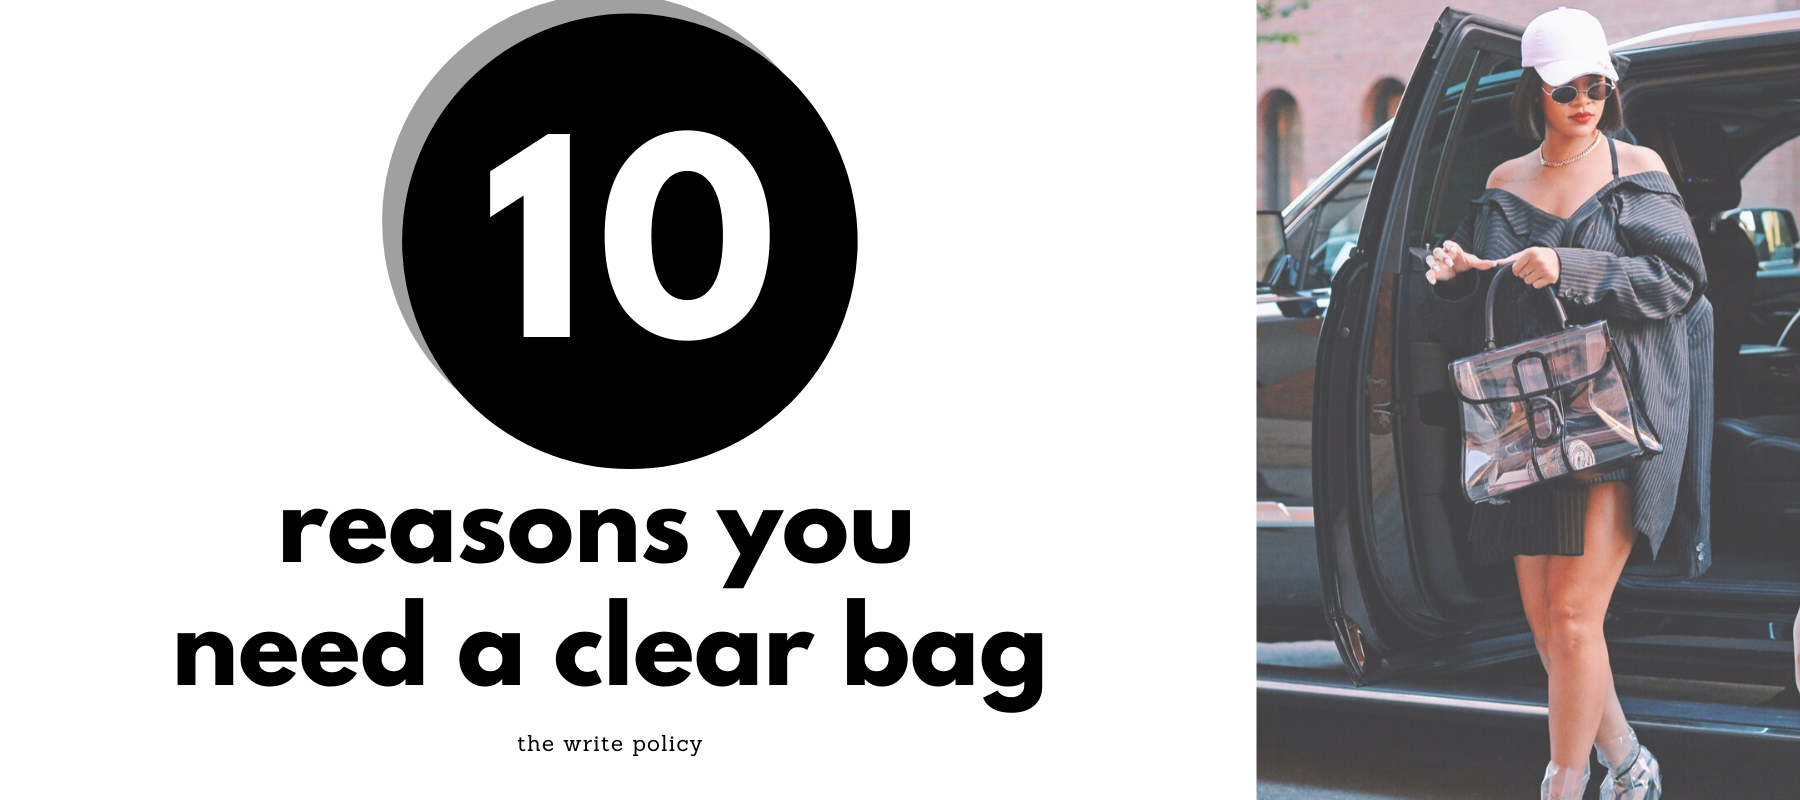 10 REASONS YOU NEED A CLEAR BAG - POLICY Handbags